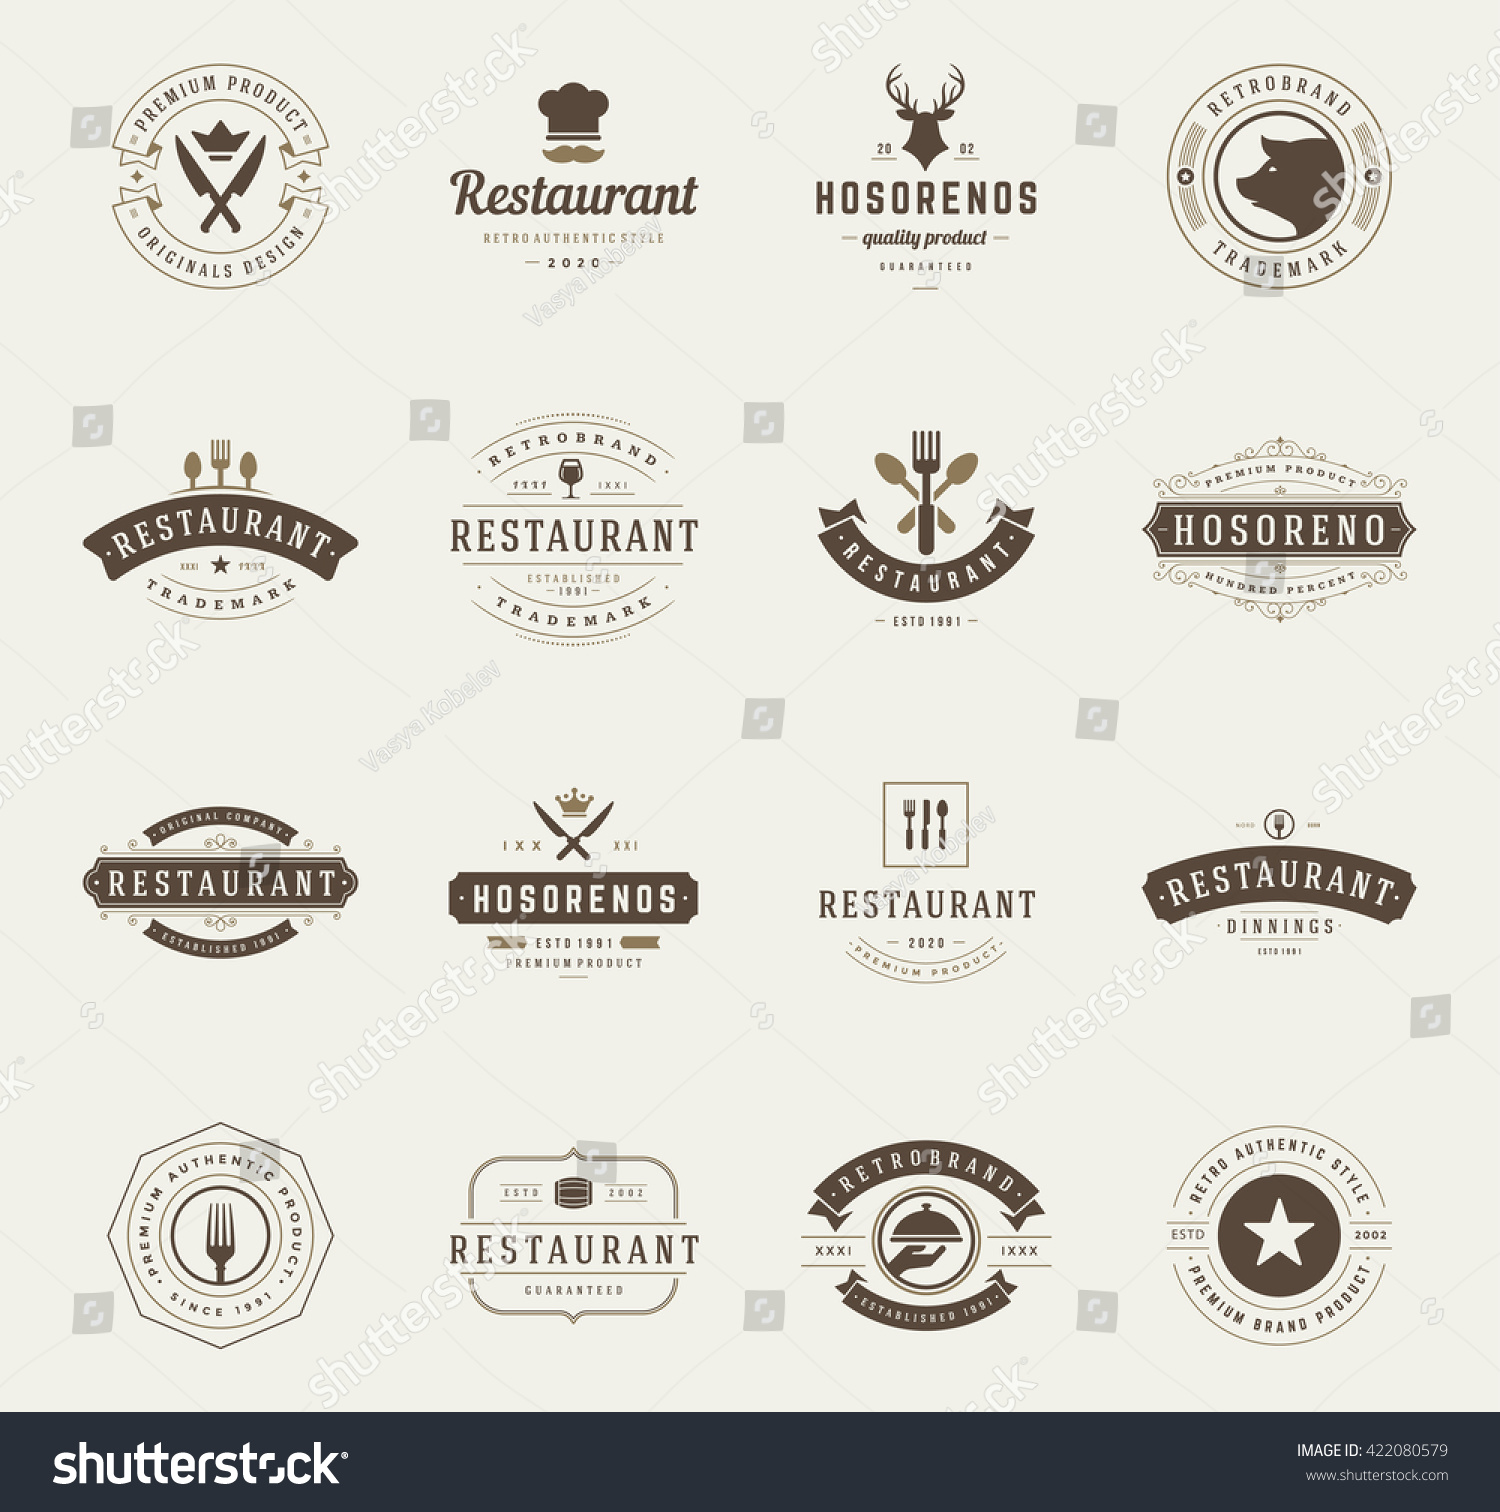 Vintage restaurant logos design templates set stock vector